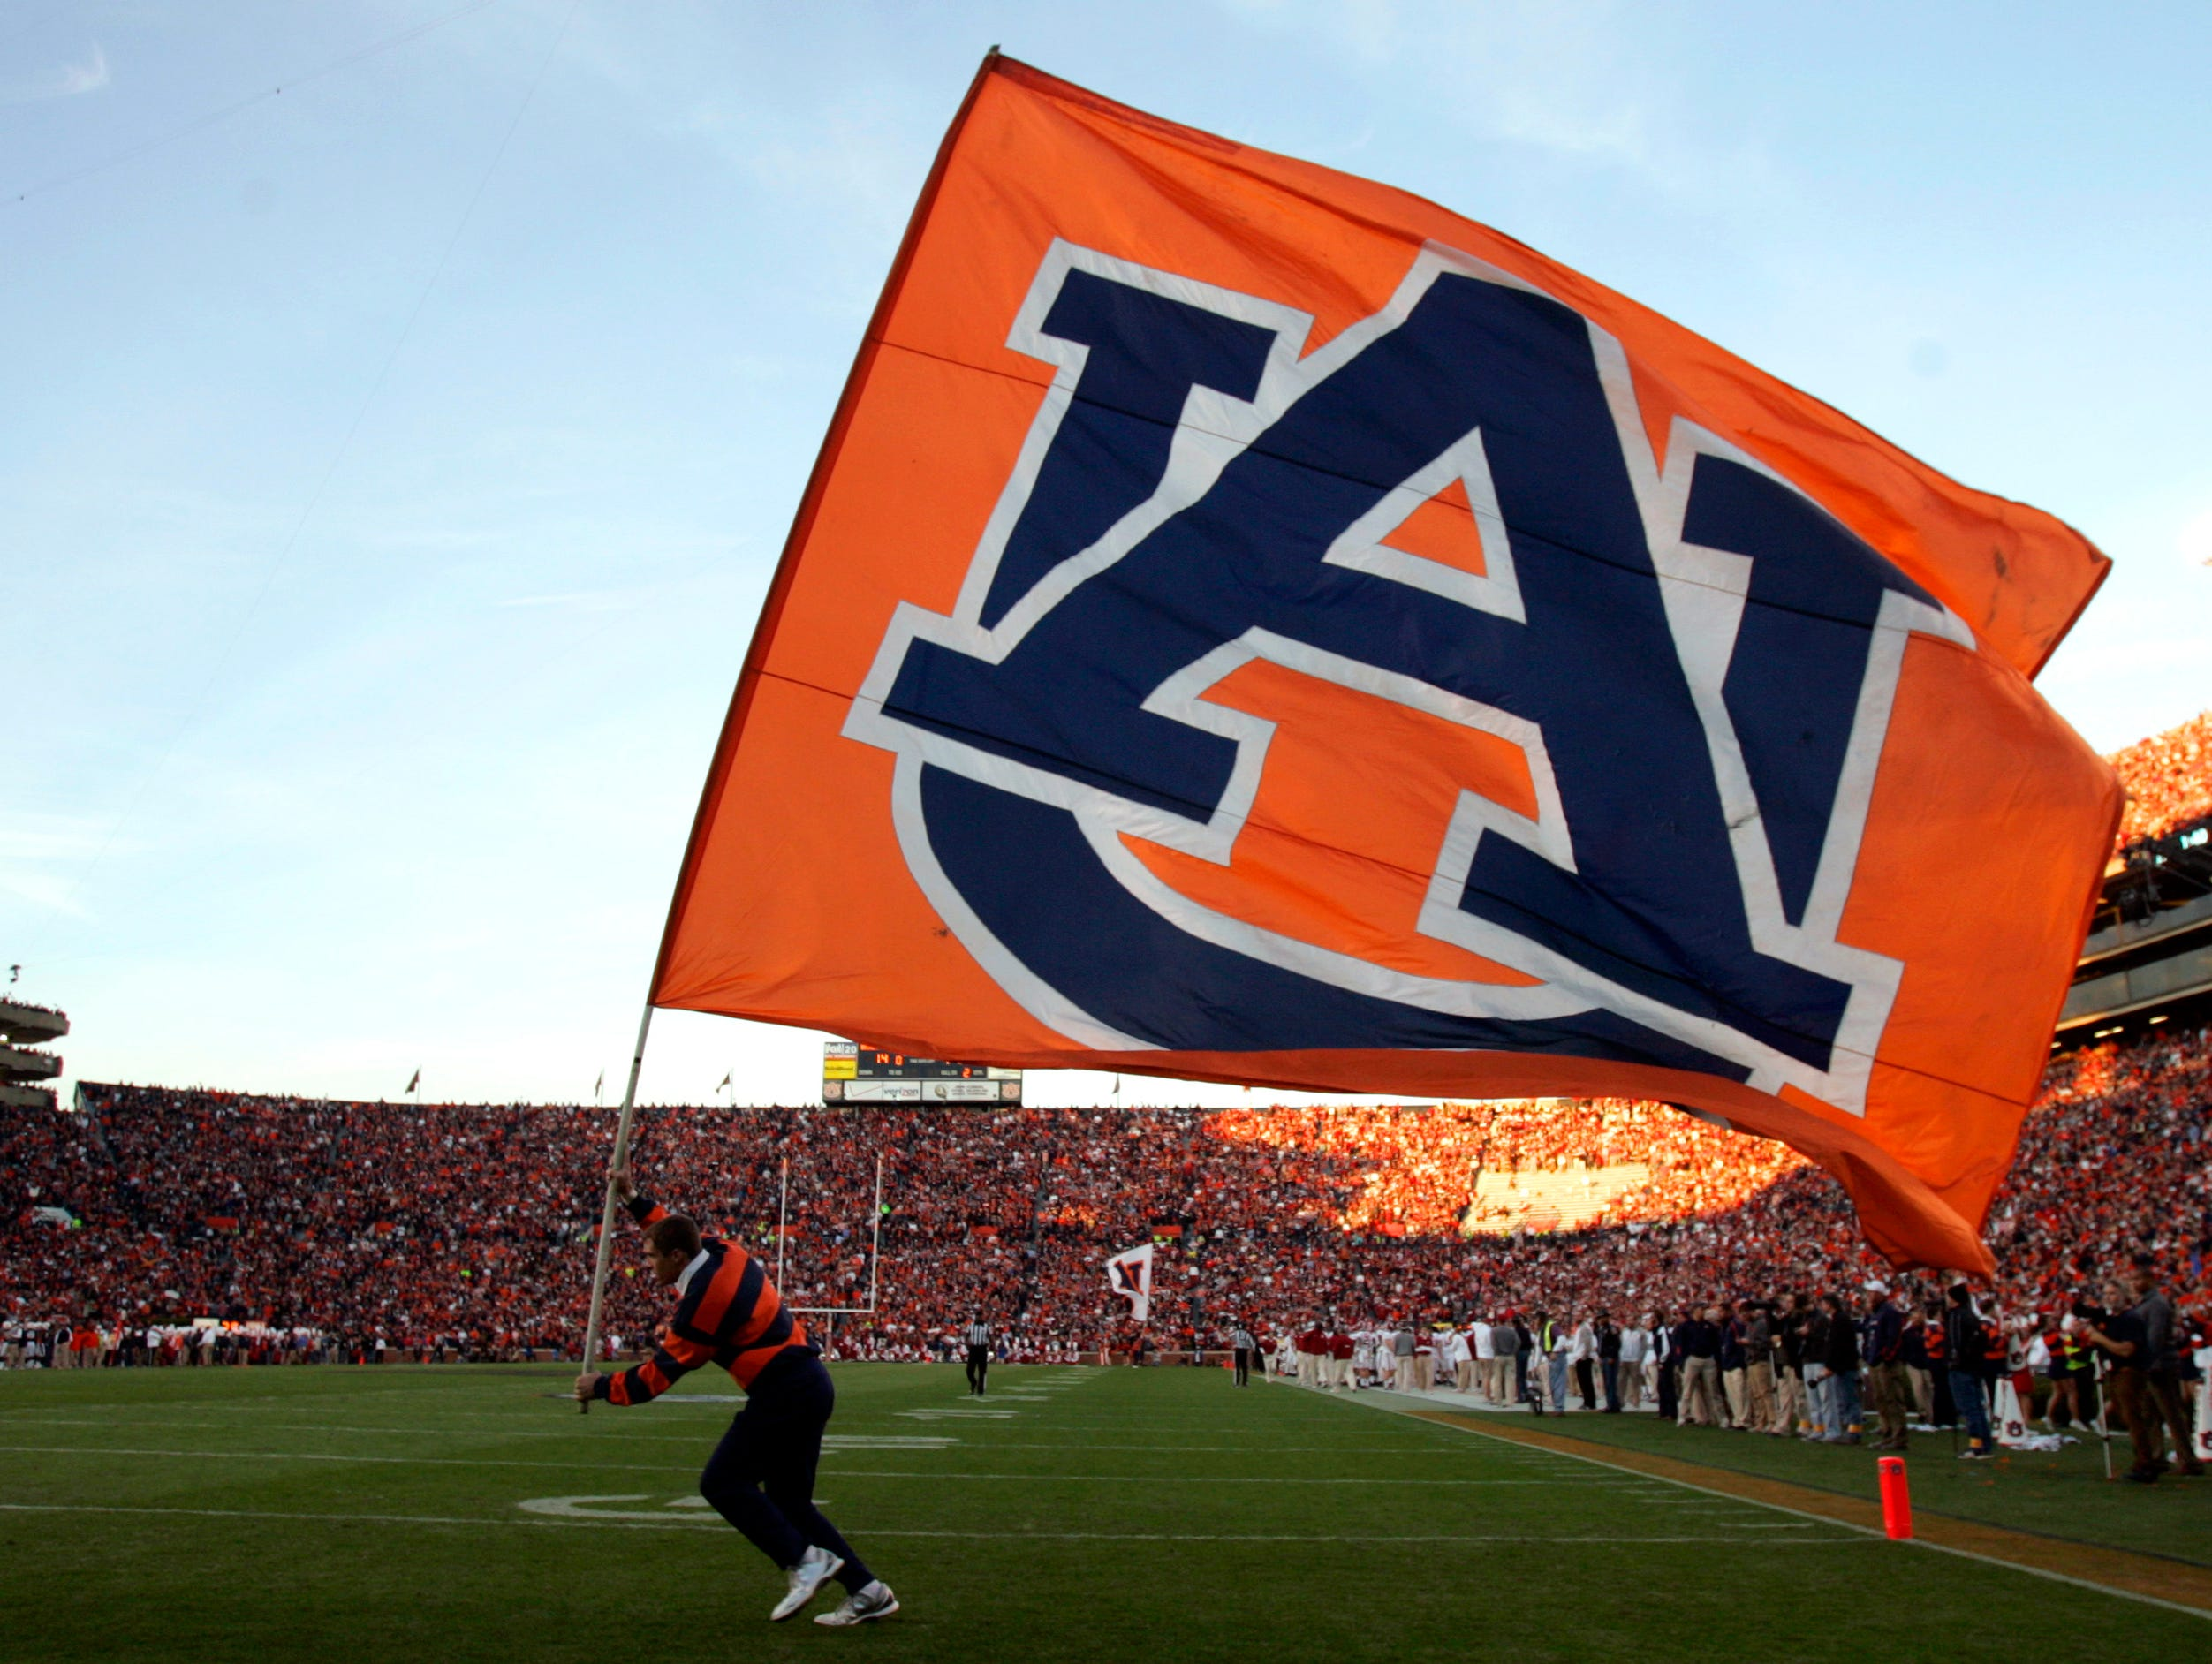 An Auburn cheerleader waves the Auburn flag after a touchdown during the second half of an NCAA college football game on Saturday, Nov. 30, 2013, in Auburn, Ala. (AP Photo/Butch Dill)